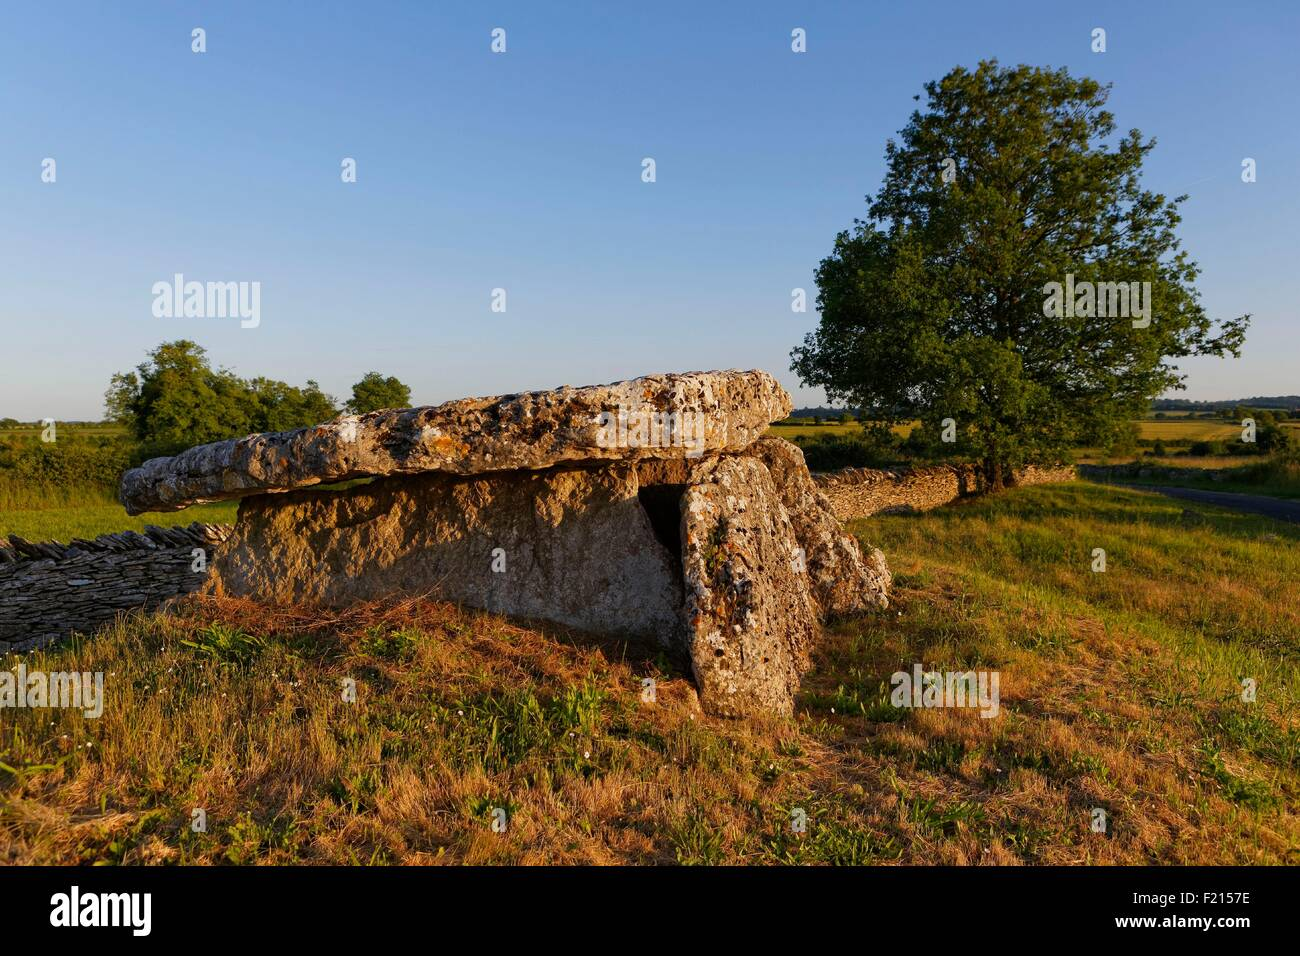 France, Vienne, Exoudun, Dolmen of Sept Chemins - Stock Image